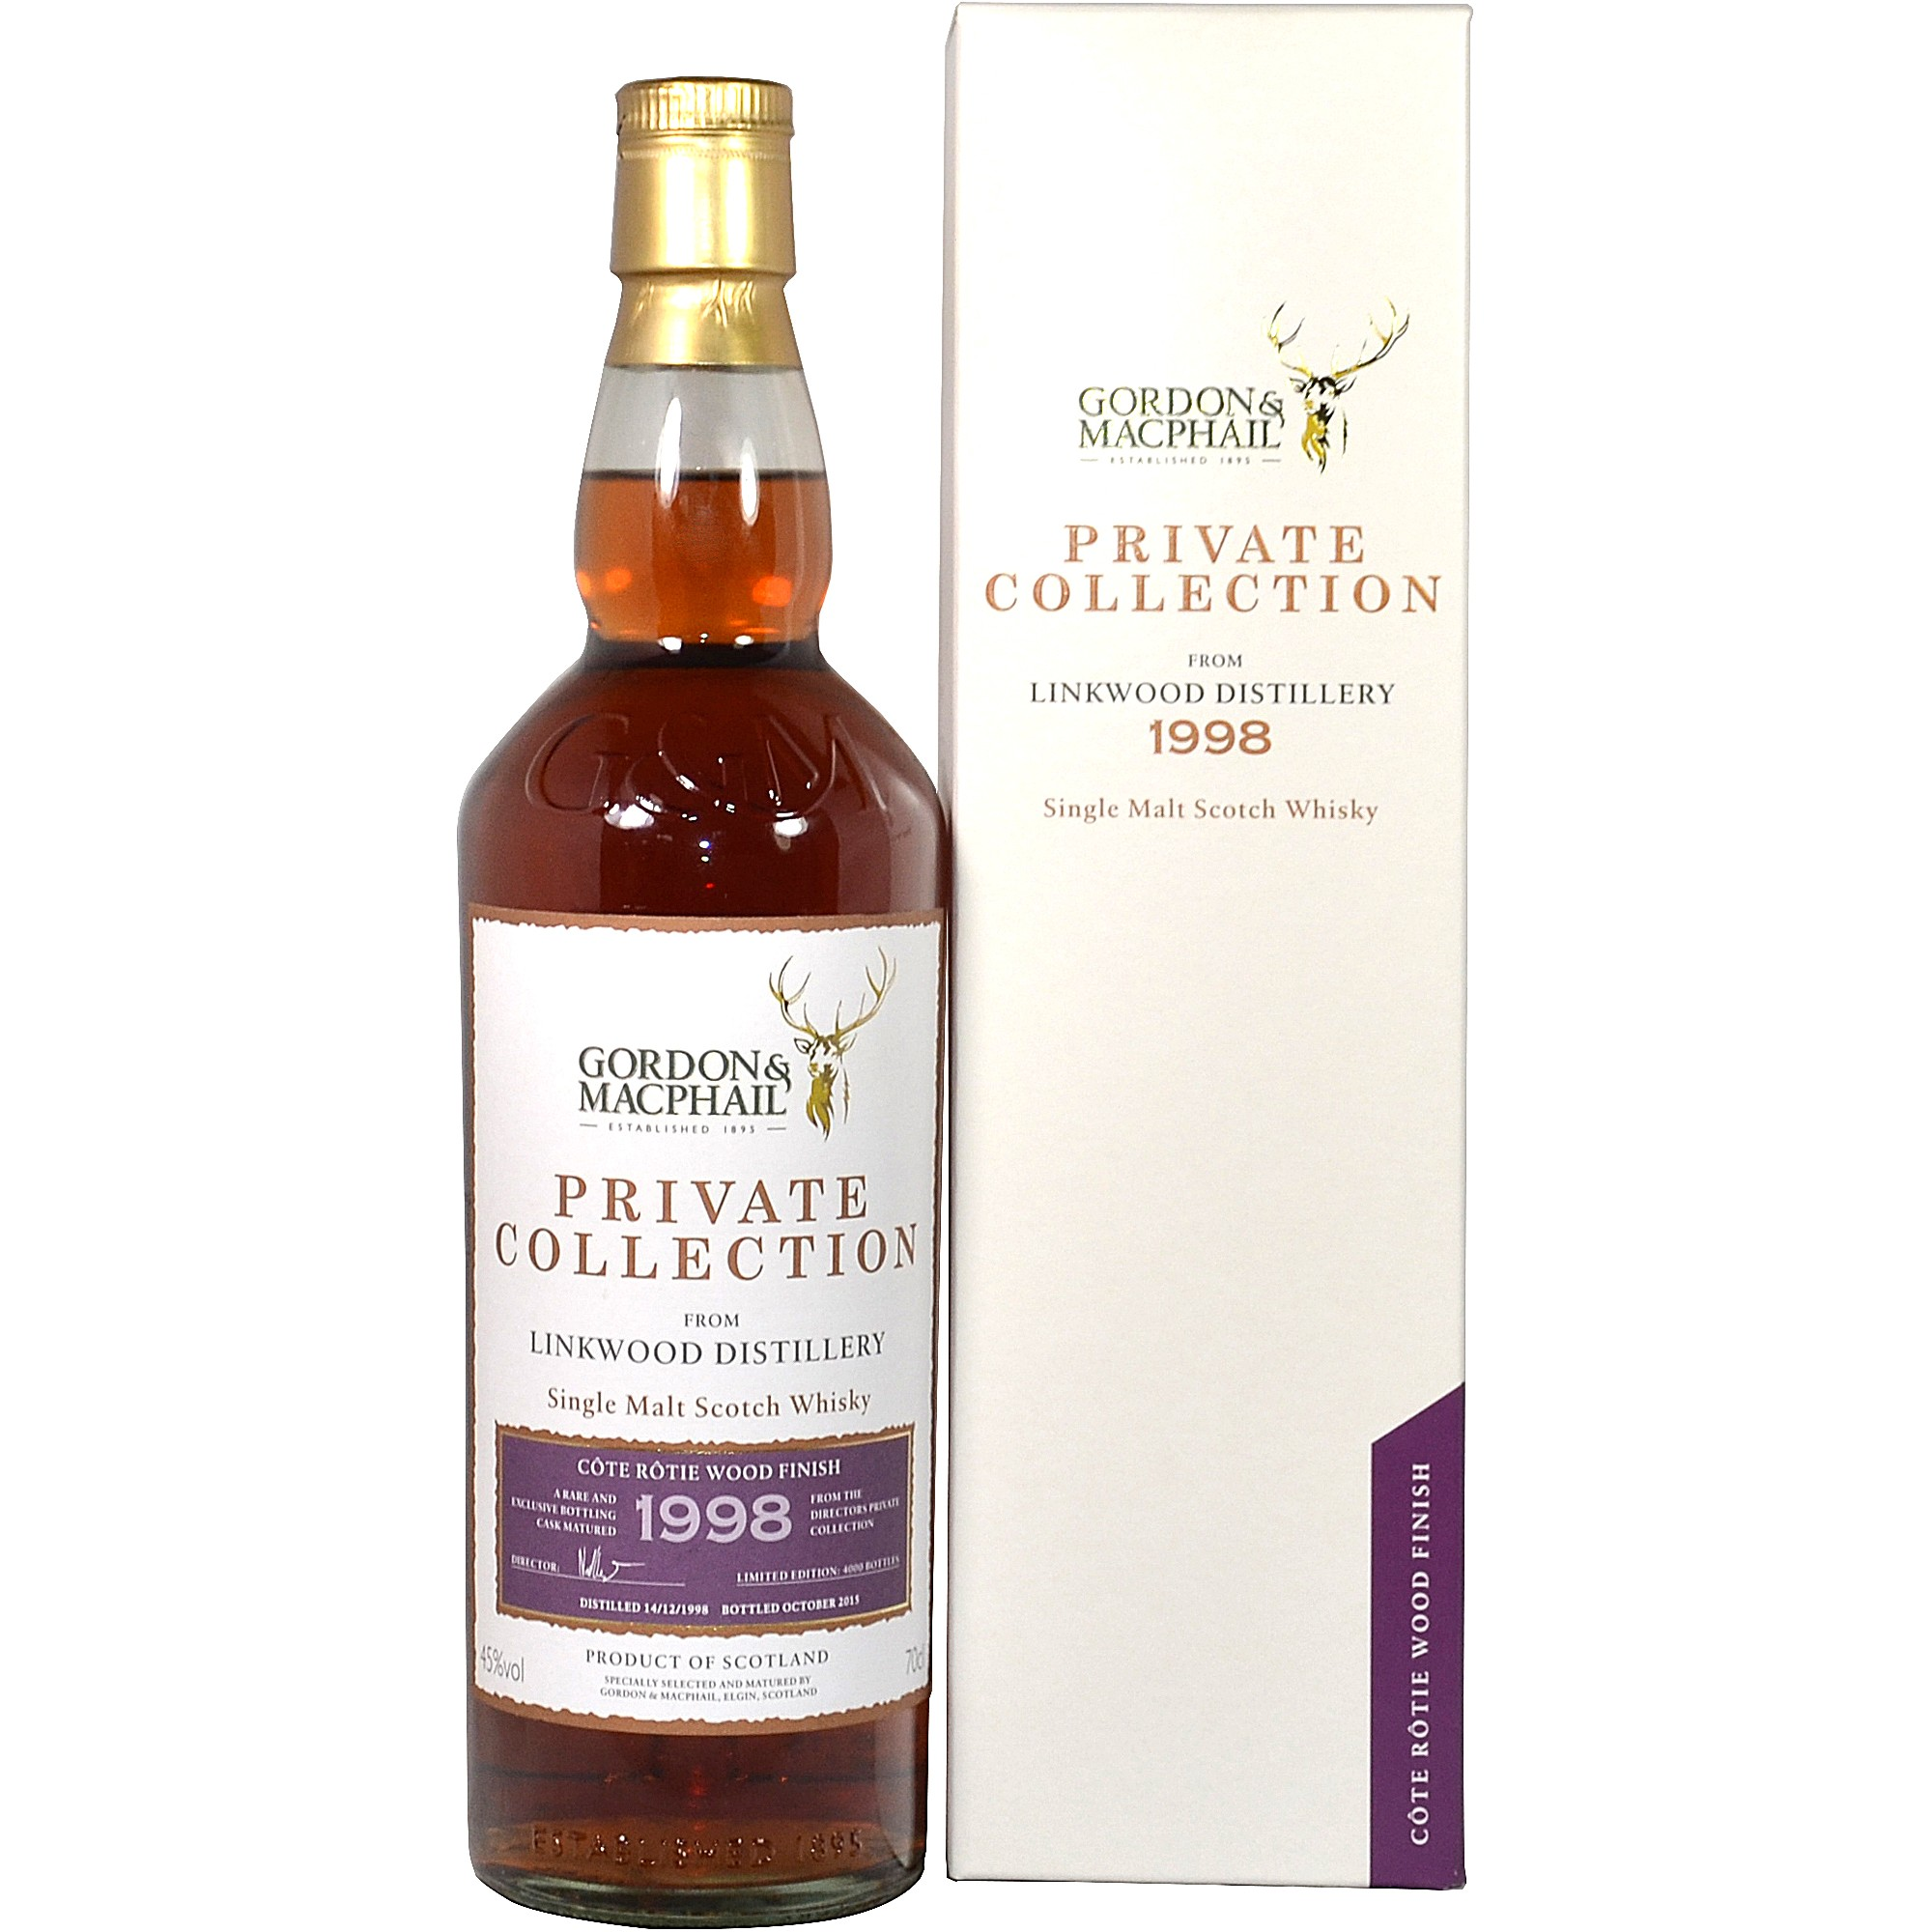 Linkwood 1998/2015 (Gordon & MacPhail Private Collection) Côte Rôtie Wood Finish